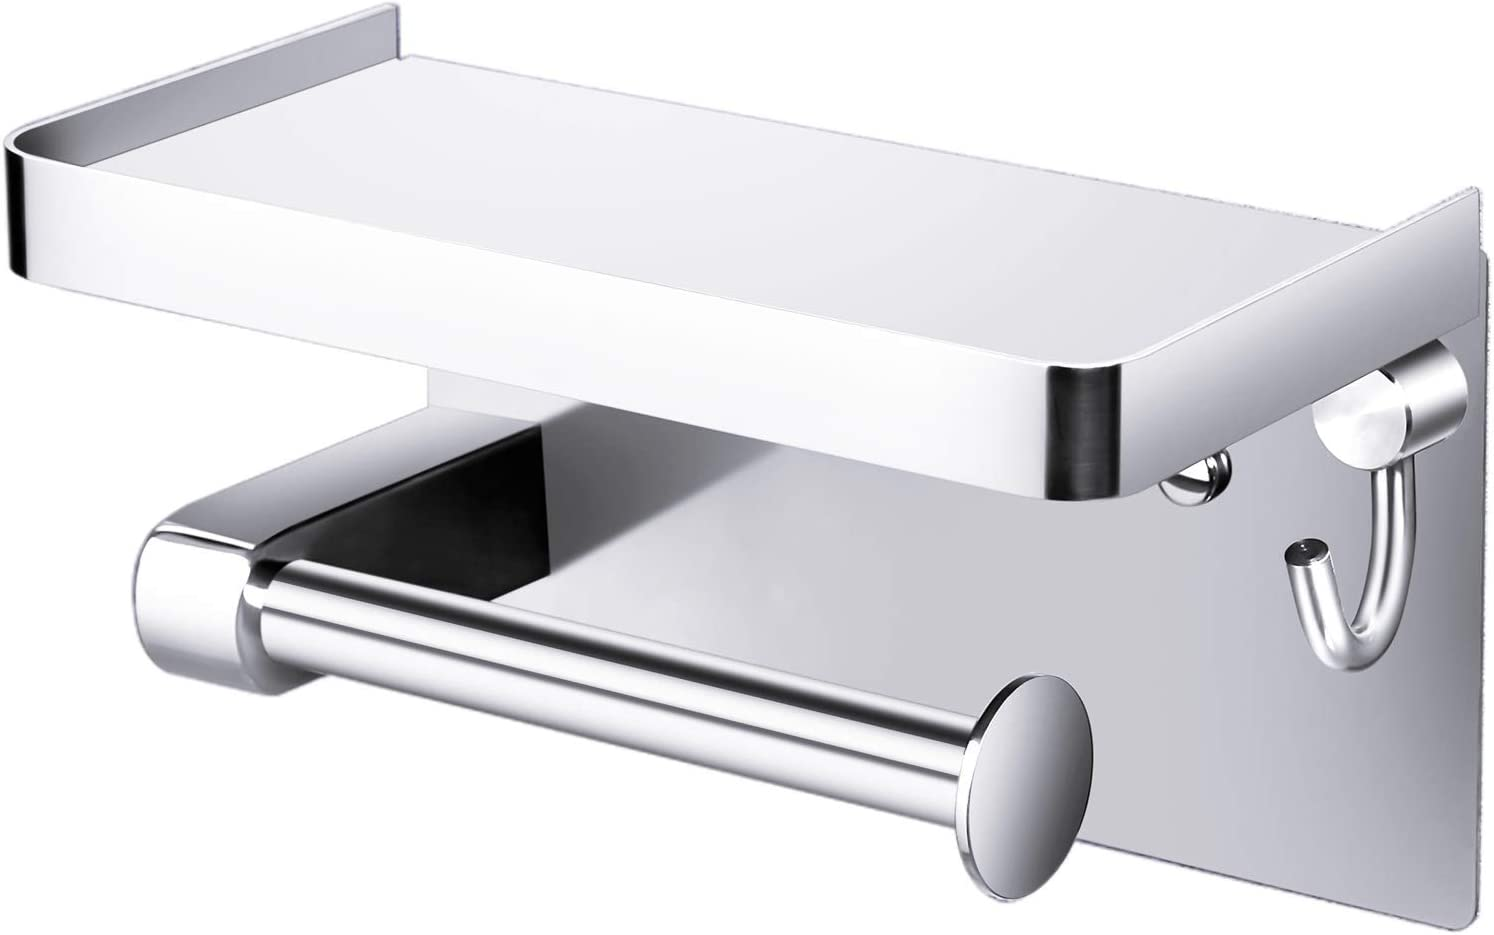 JOIE Toilet Max 54% OFF Paper Holder Selling and selling Towel with Stand Bathroom